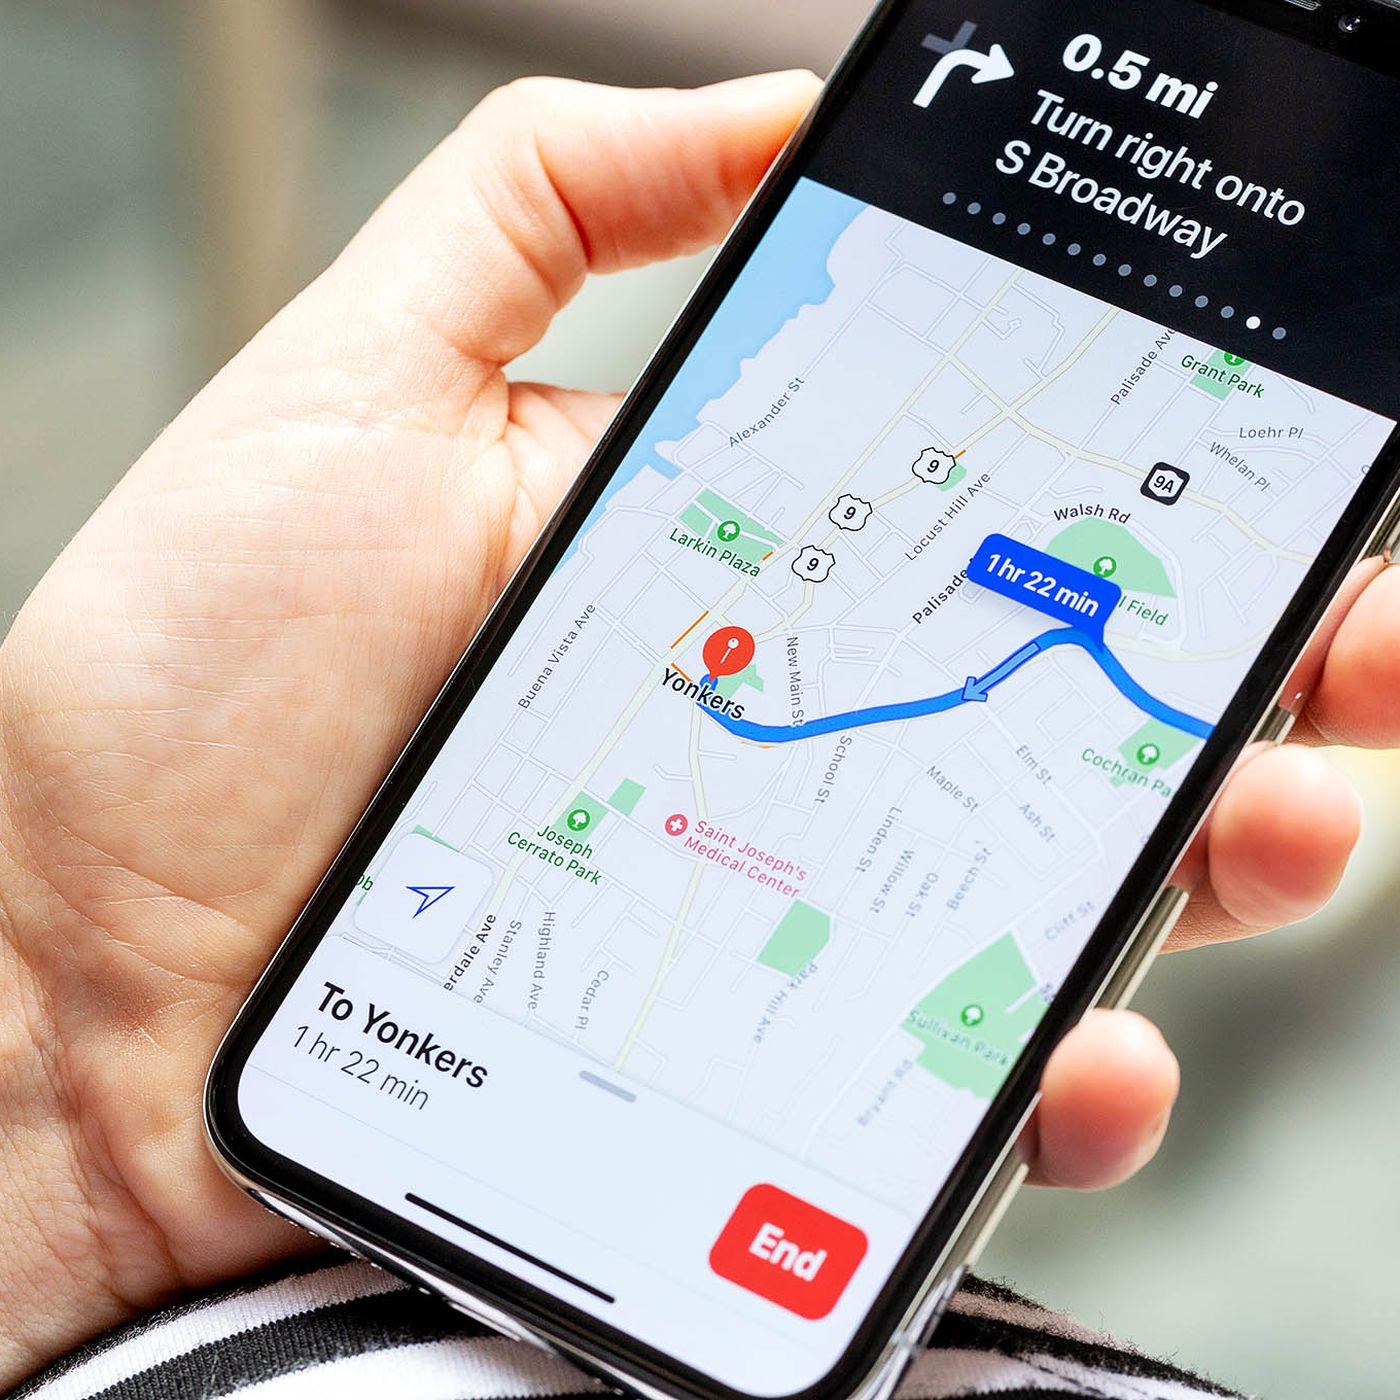 Apple is rebuilding Maps with its own data - The Verge